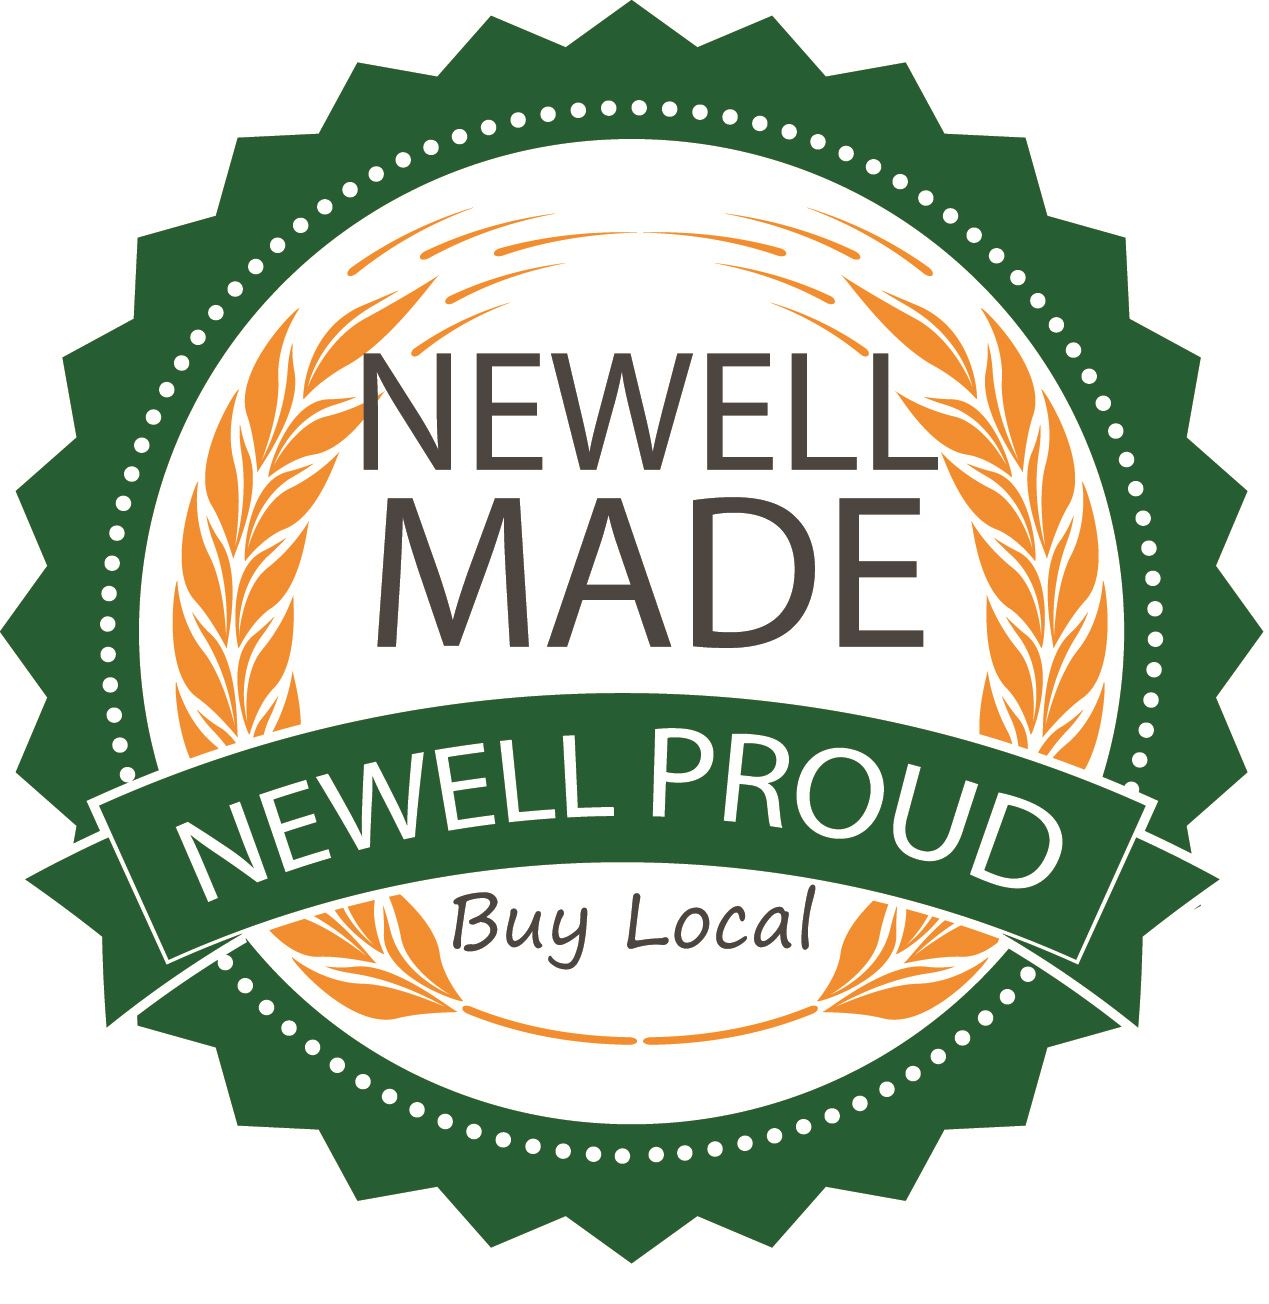 Artisan Stickers - Newell Made Newell Proud